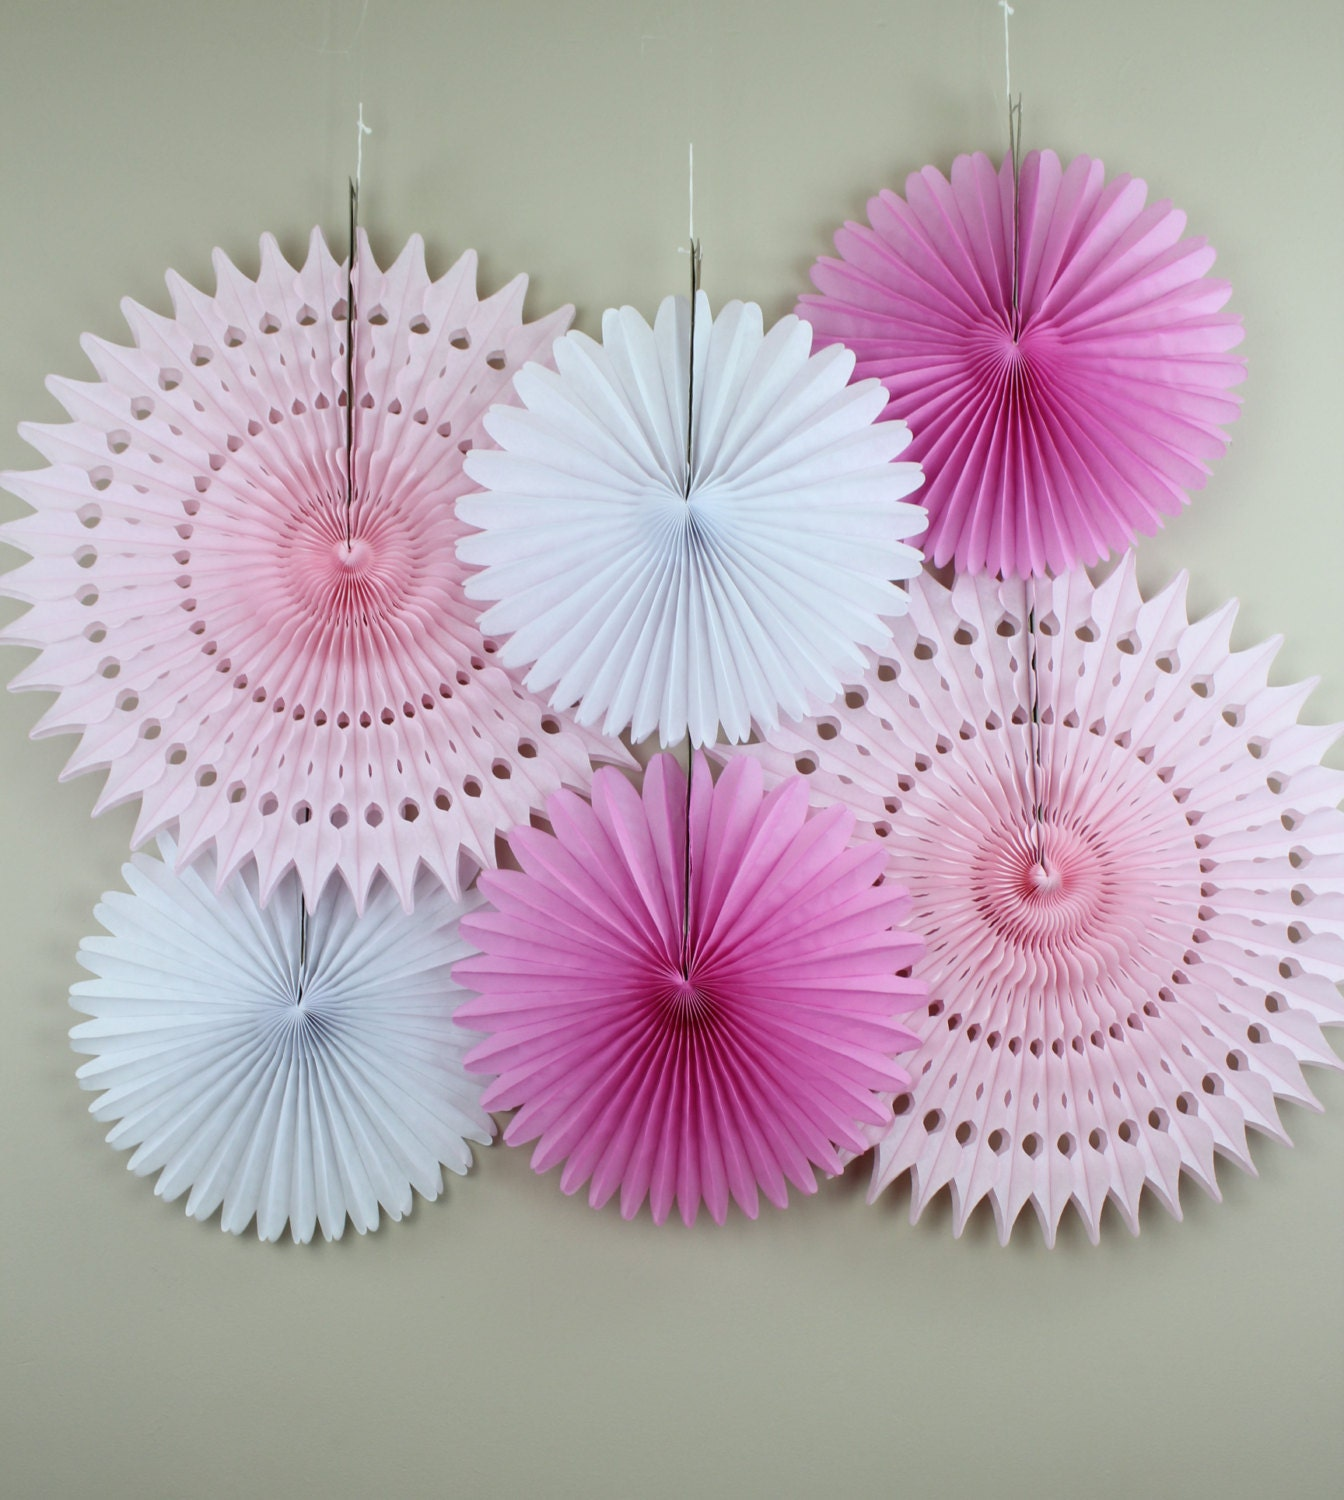 Birthday party decorations 6 tissue paper fans decor kit - Paper decoration for birthday ...